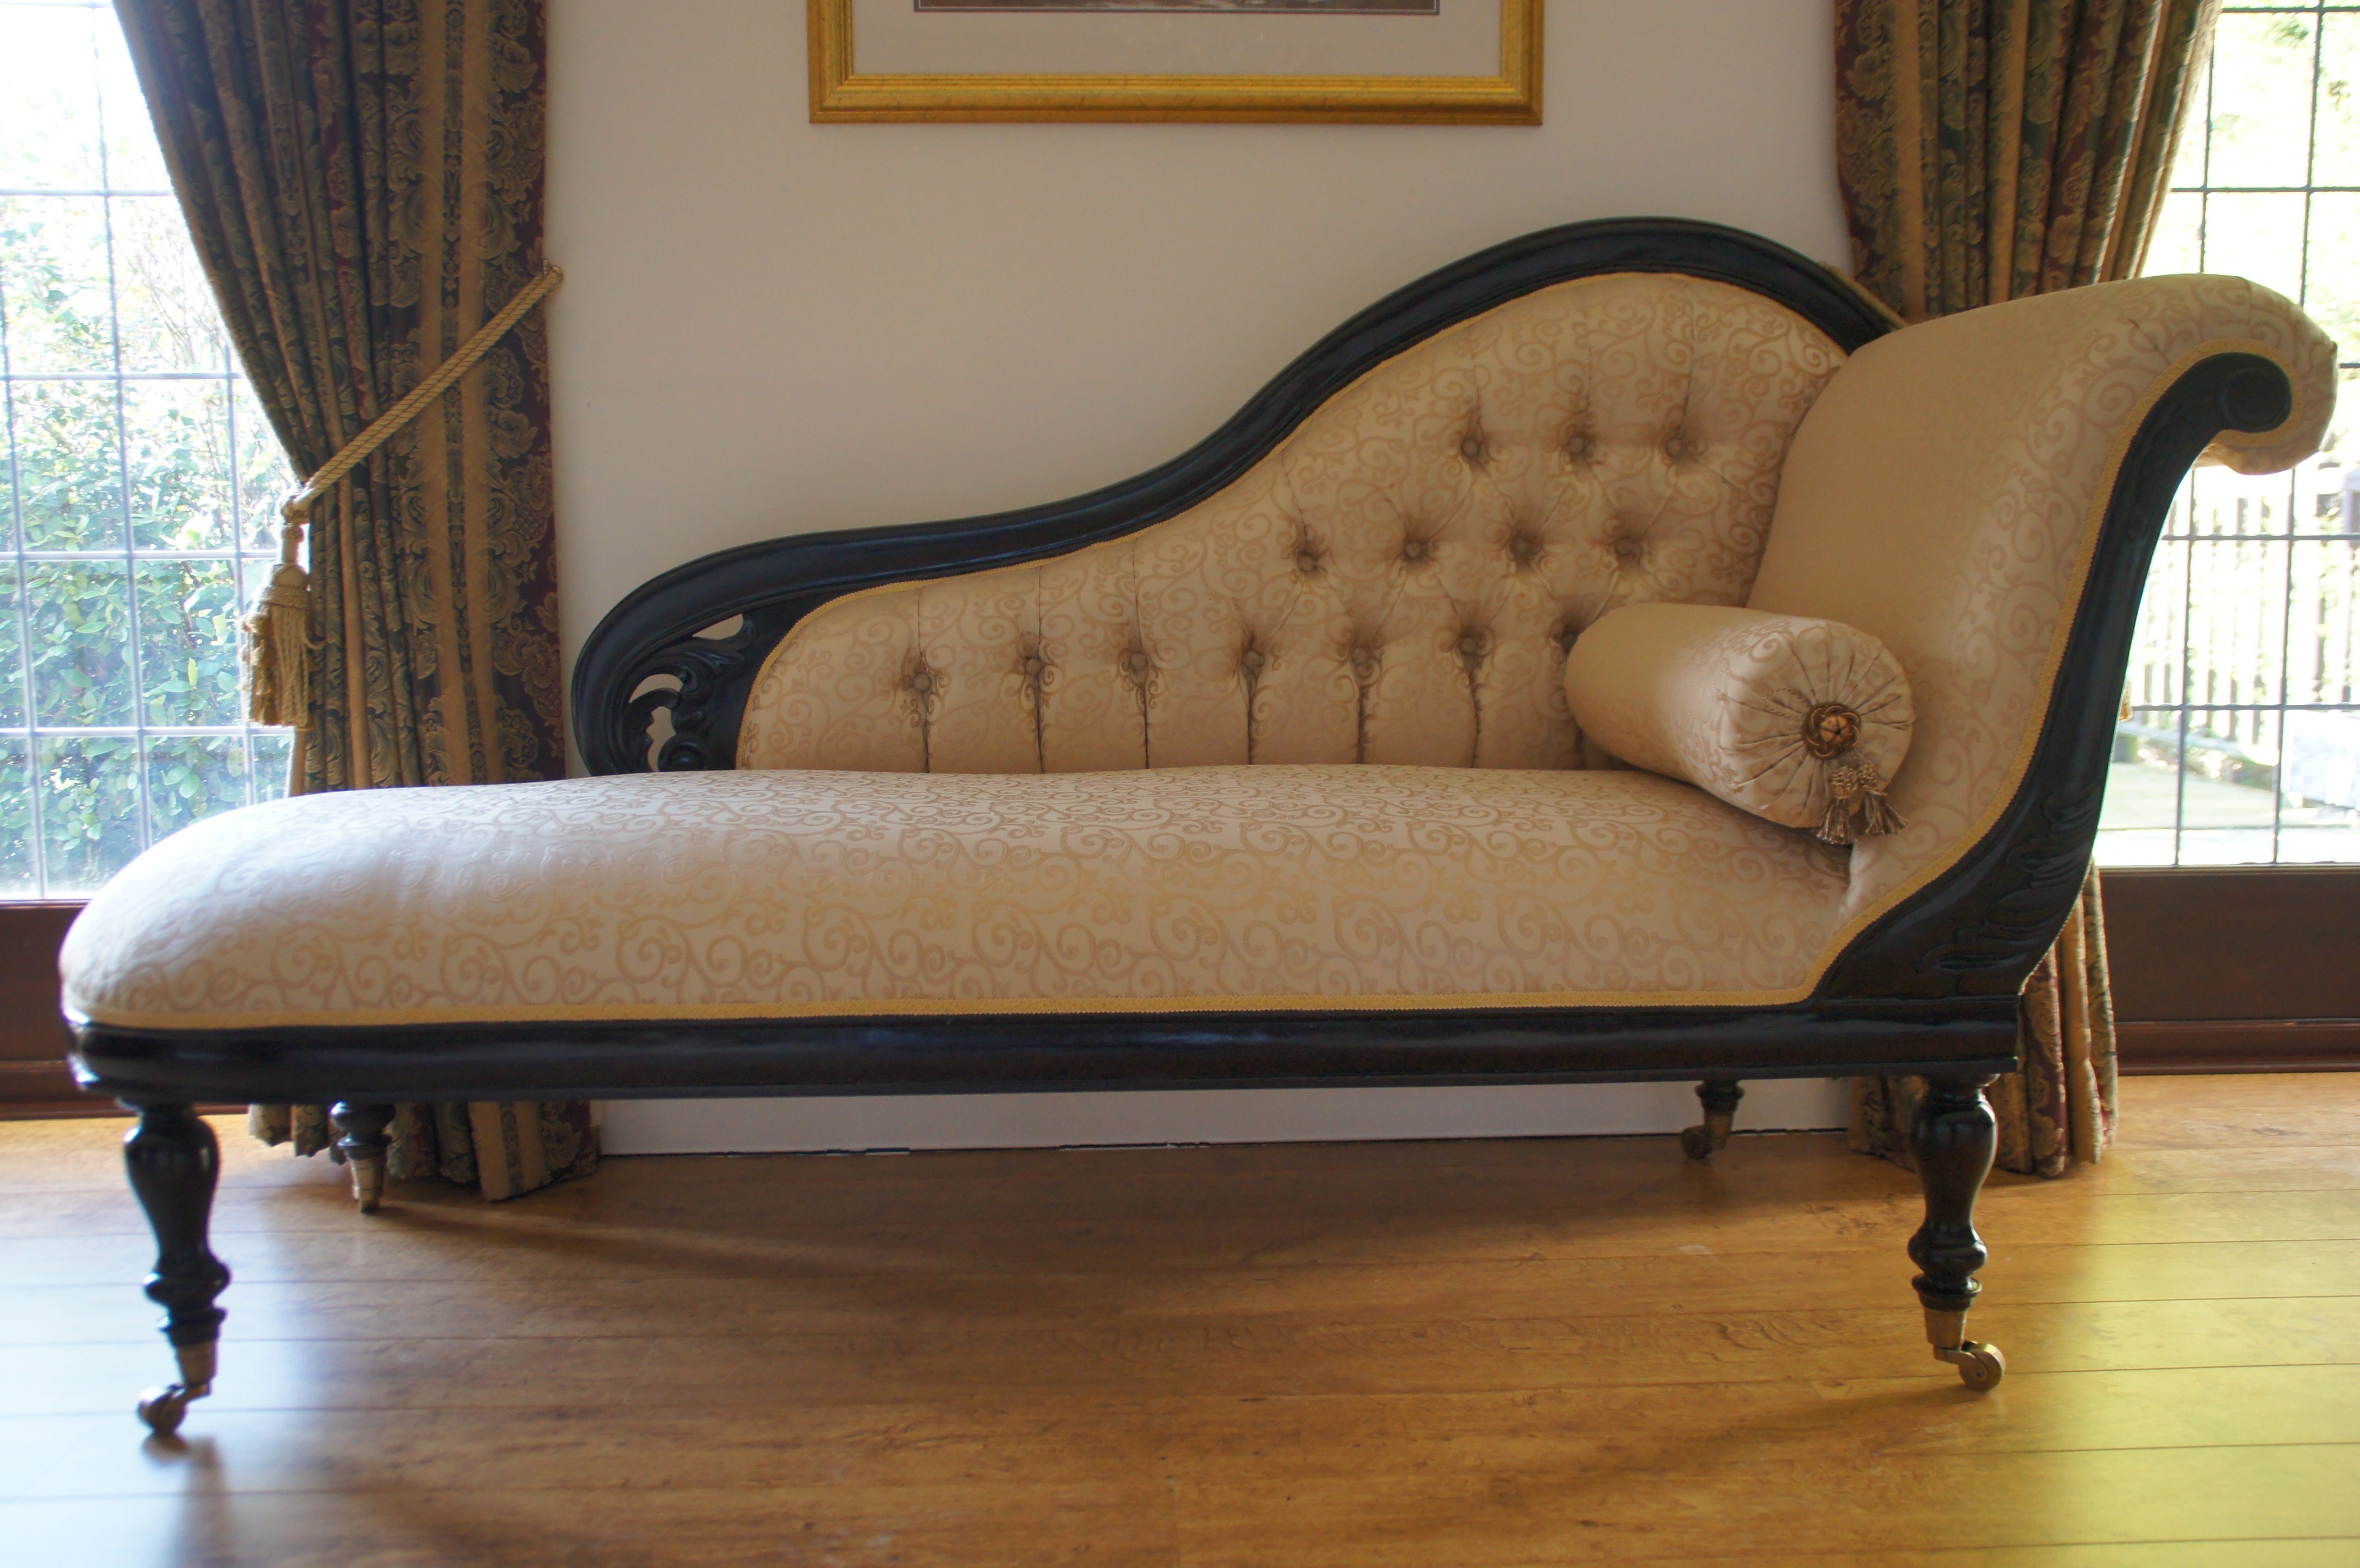 Well Known Victorian Chaise Lounge Chairs Regarding Vintage White Leather Victorian Chaise Lounge Sofa With Black (View 11 of 15)